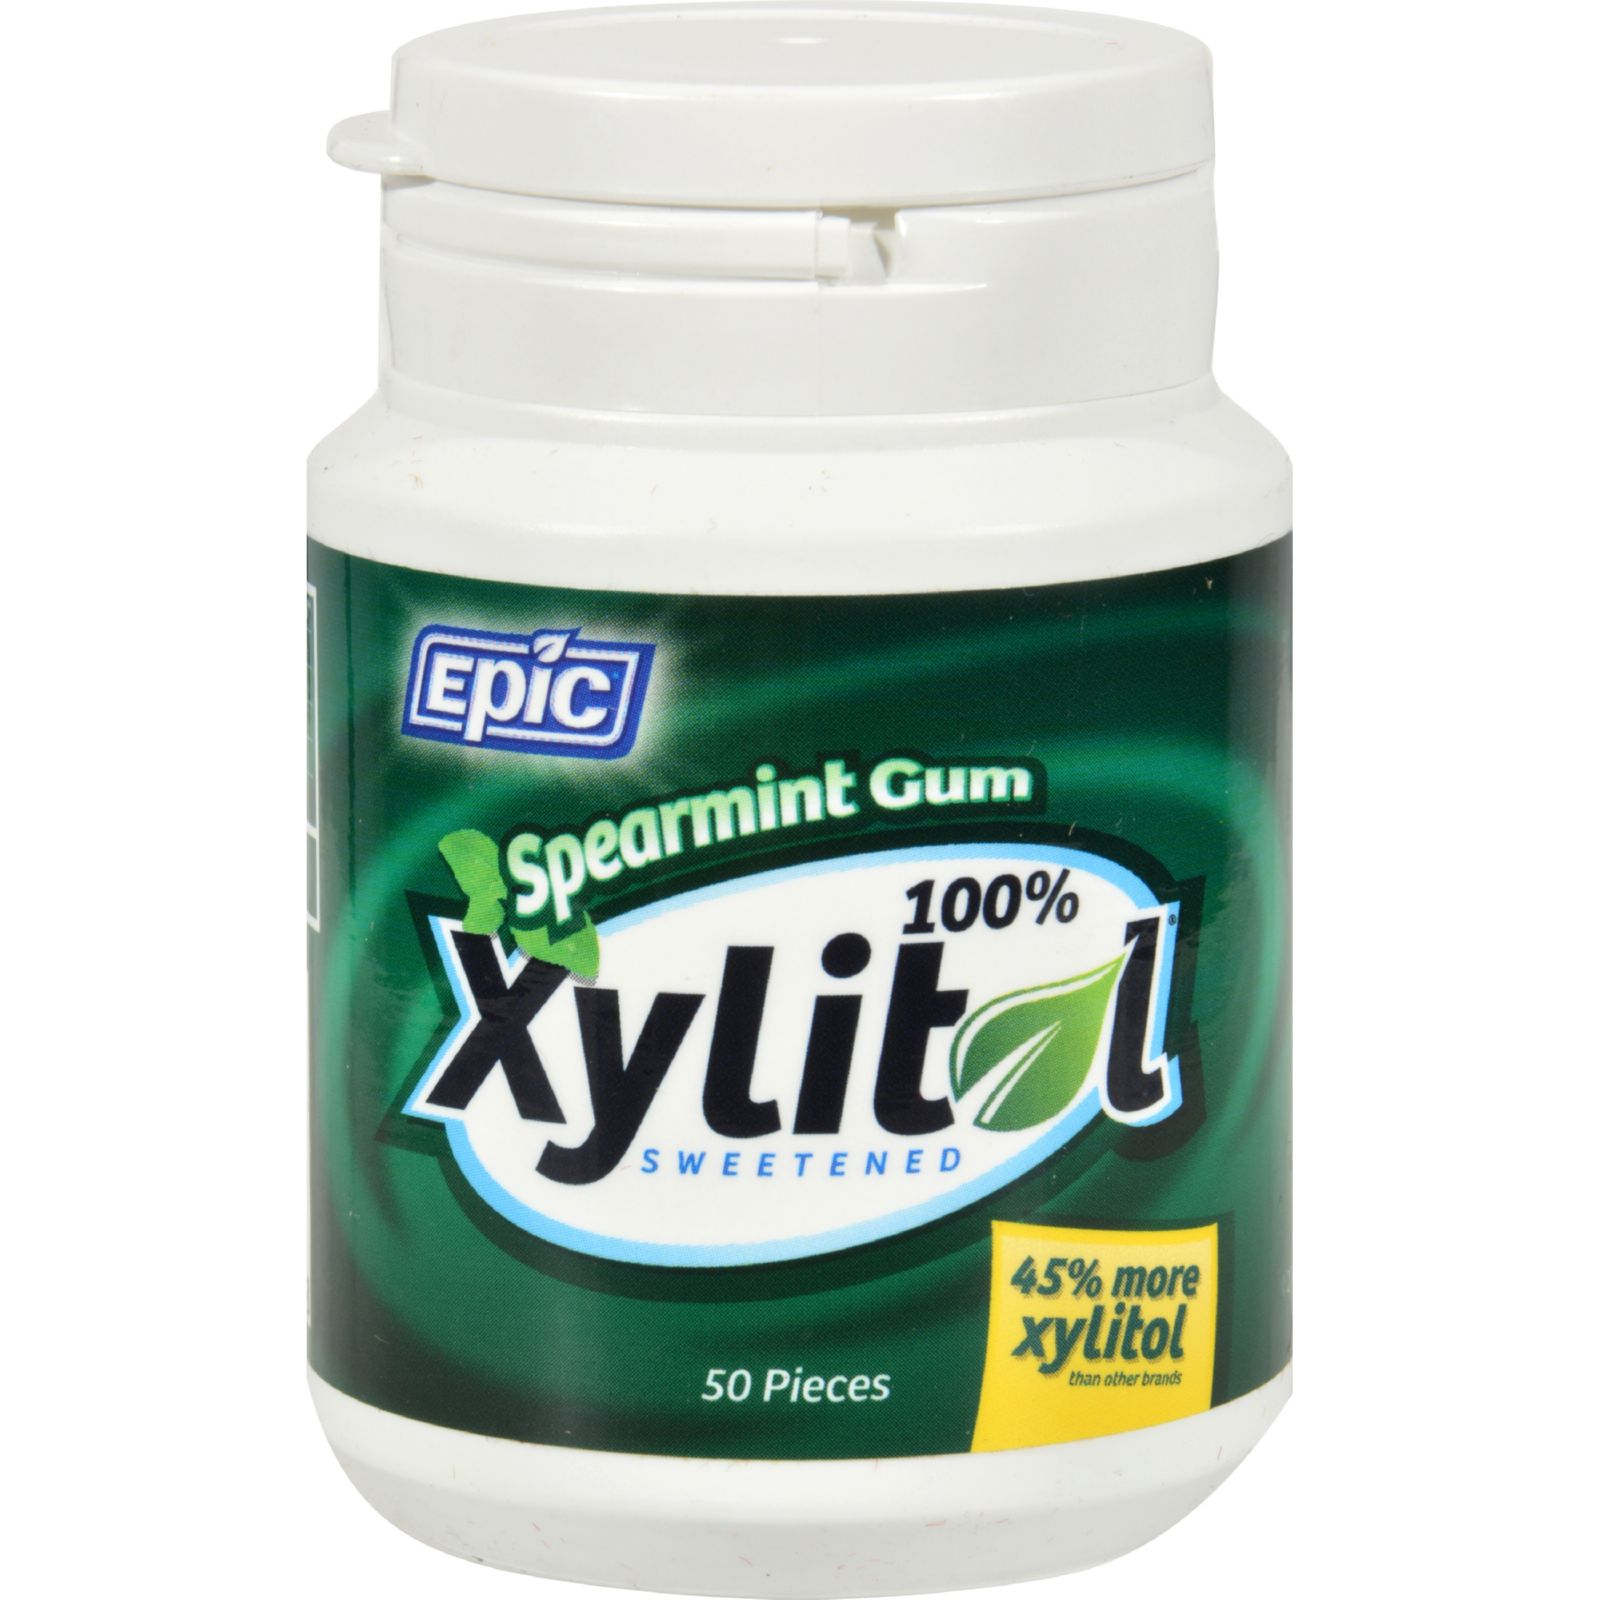 Spearmint Gum - Xylitol Sweetened - 50 Count